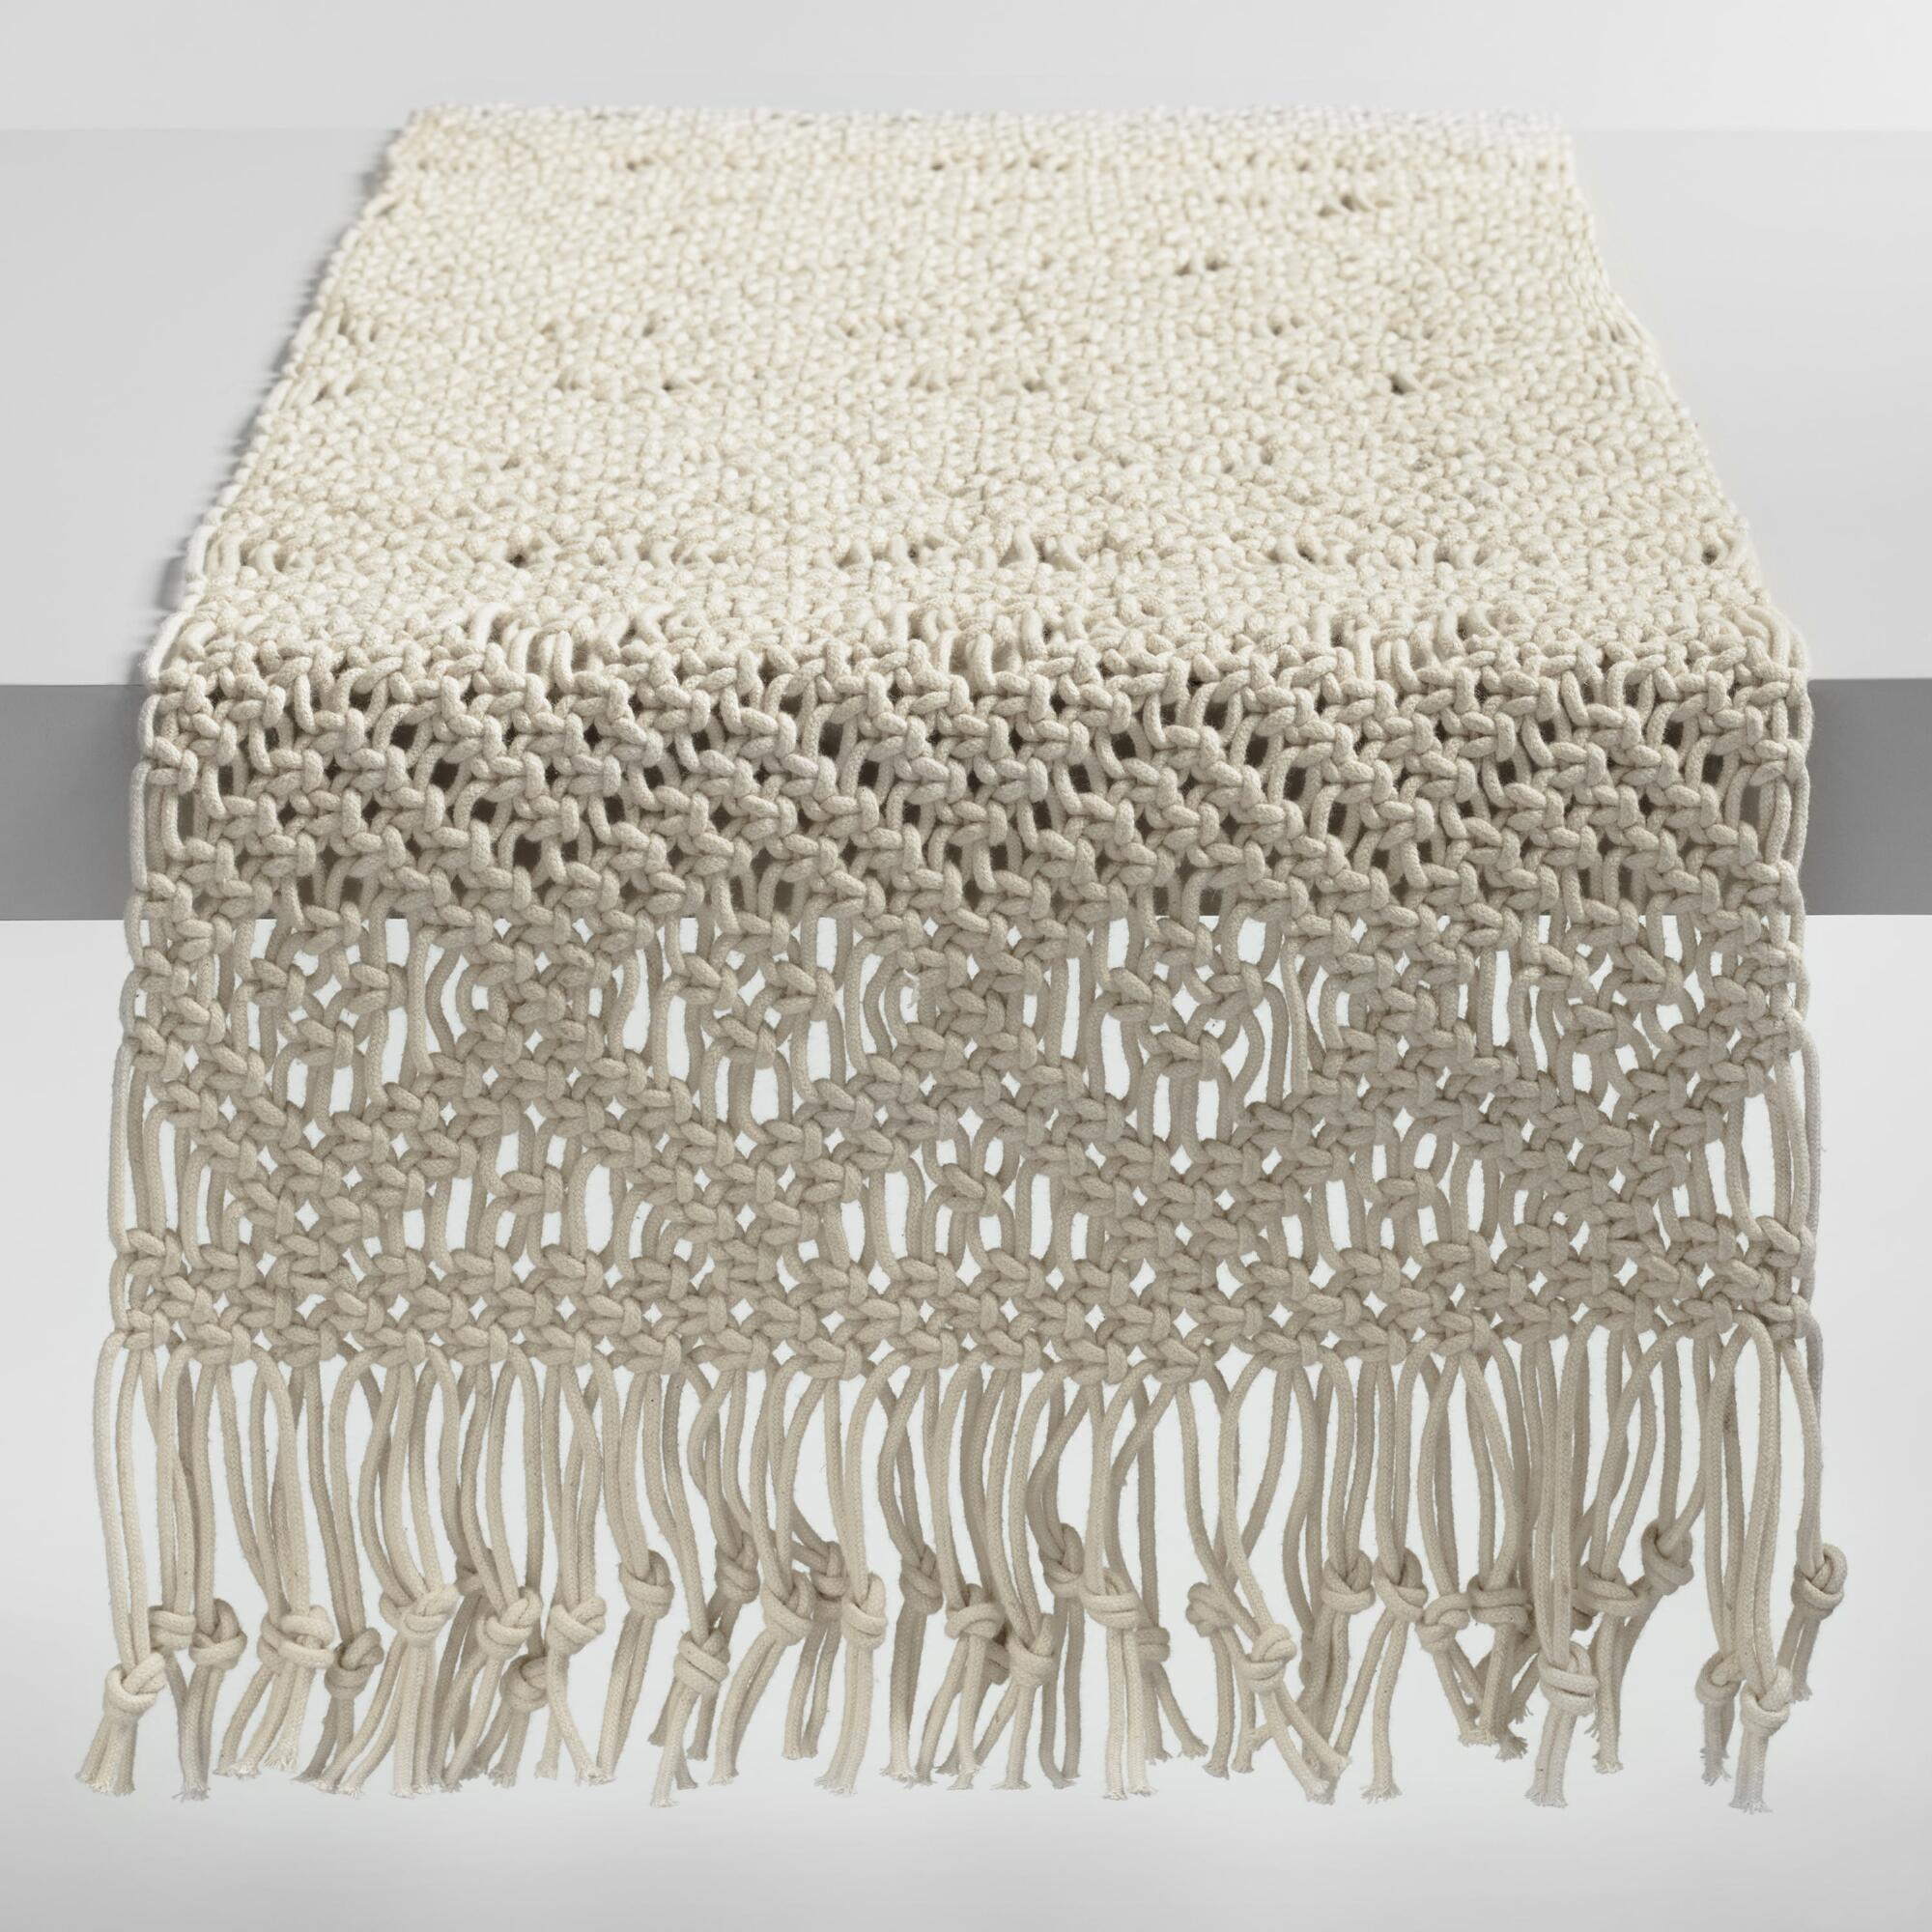 natural macrame table runner world market iipsrv fcgi artistic accents tablecloth luxury dining room furniture blue patio ikea glass top real wood flooring nate berkus towels